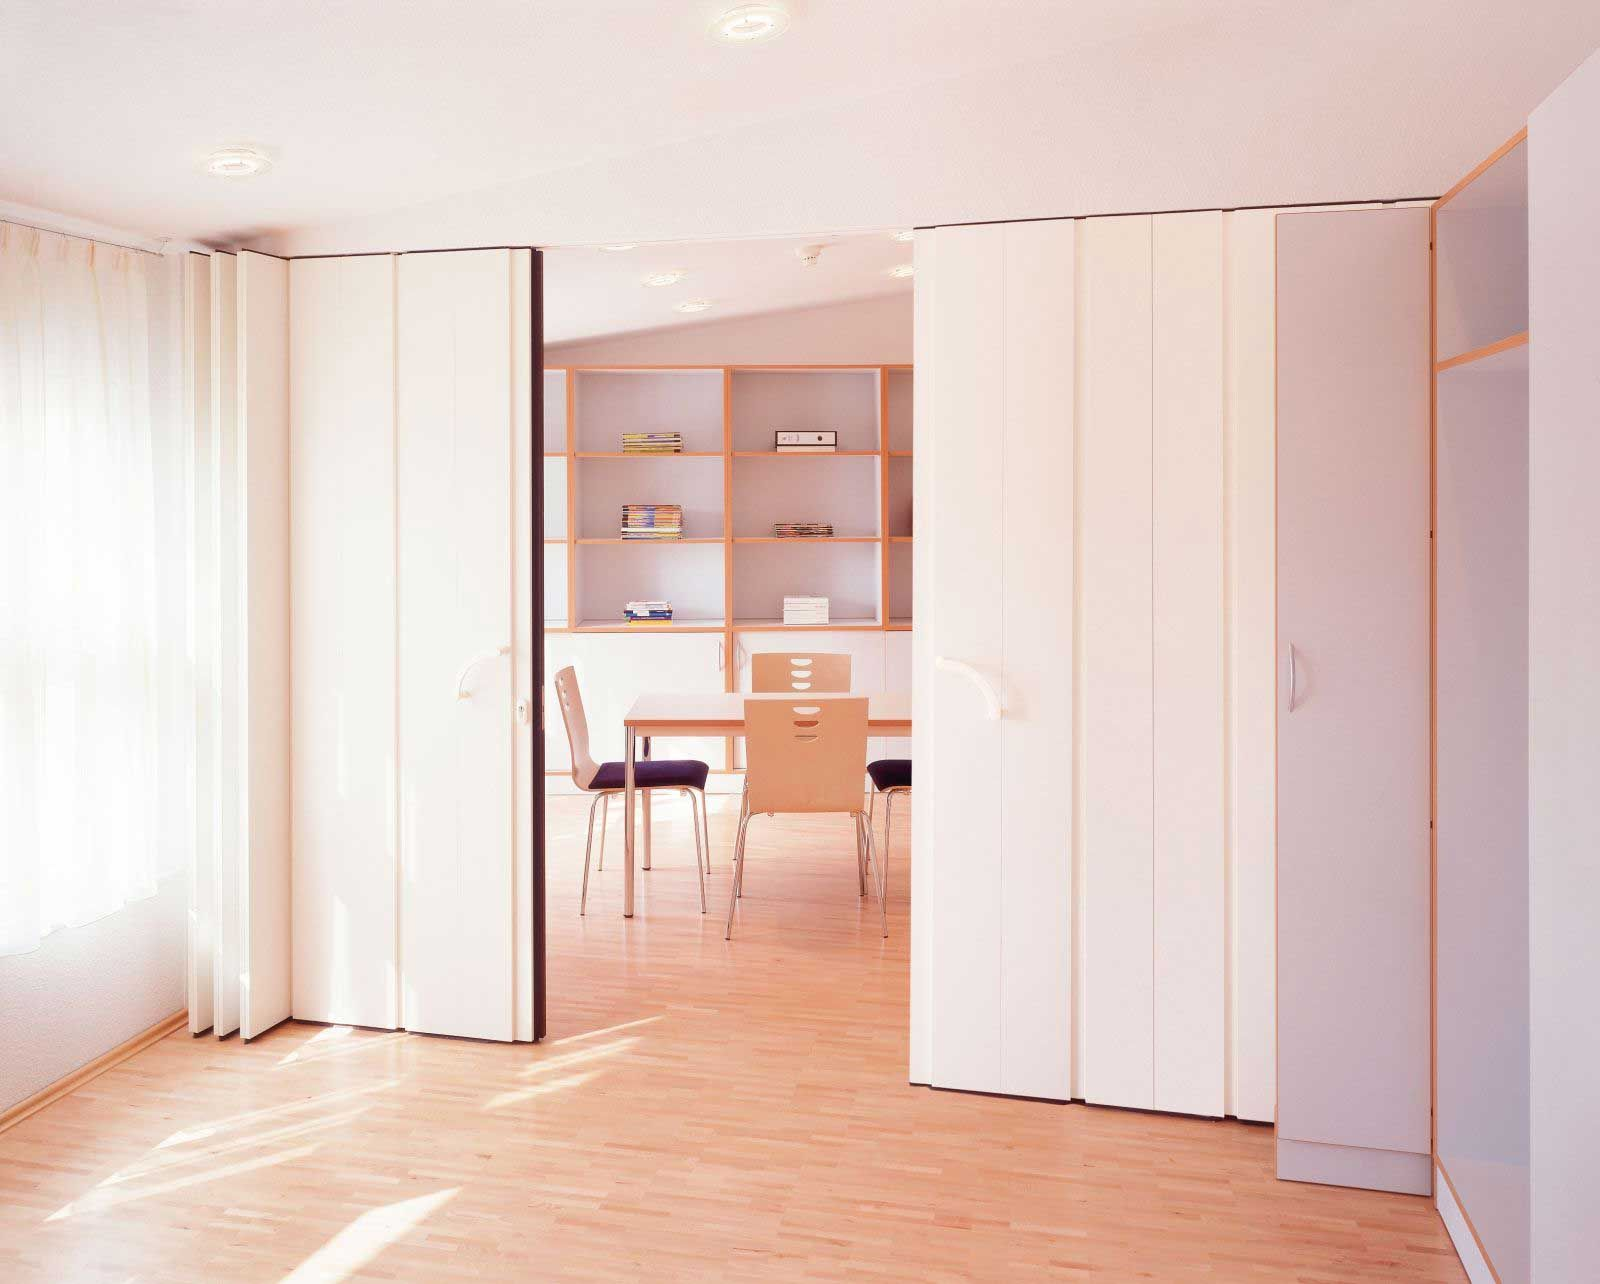 dorma variplan movable wall partitions | remodel | pinterest